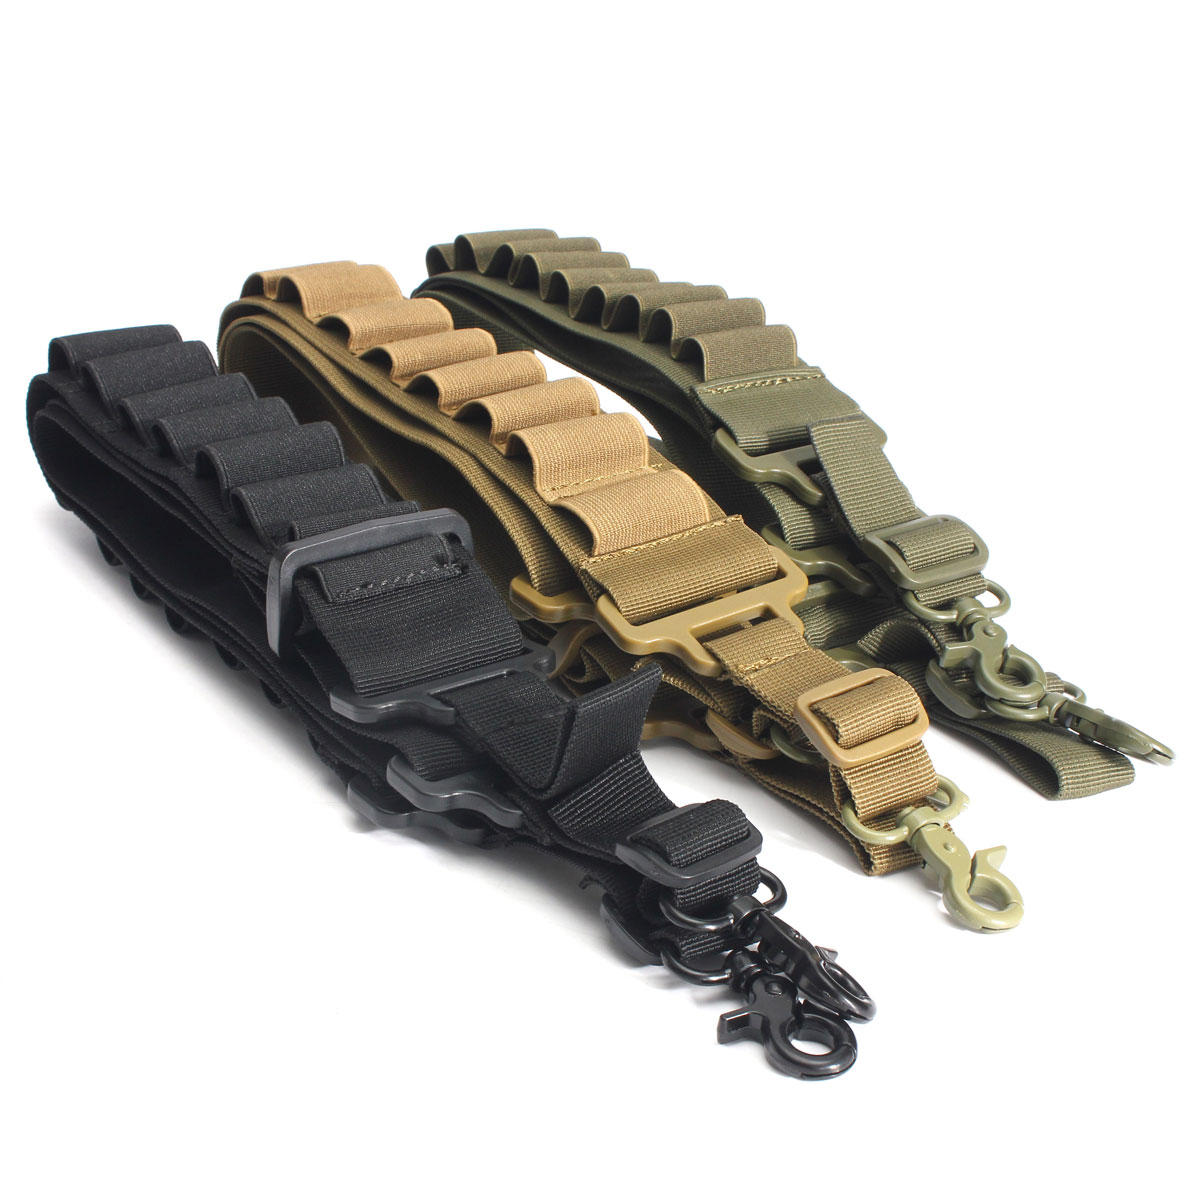 Tactical 2 Point Bungee Sling Quick Release Adjustable Paintball Strap